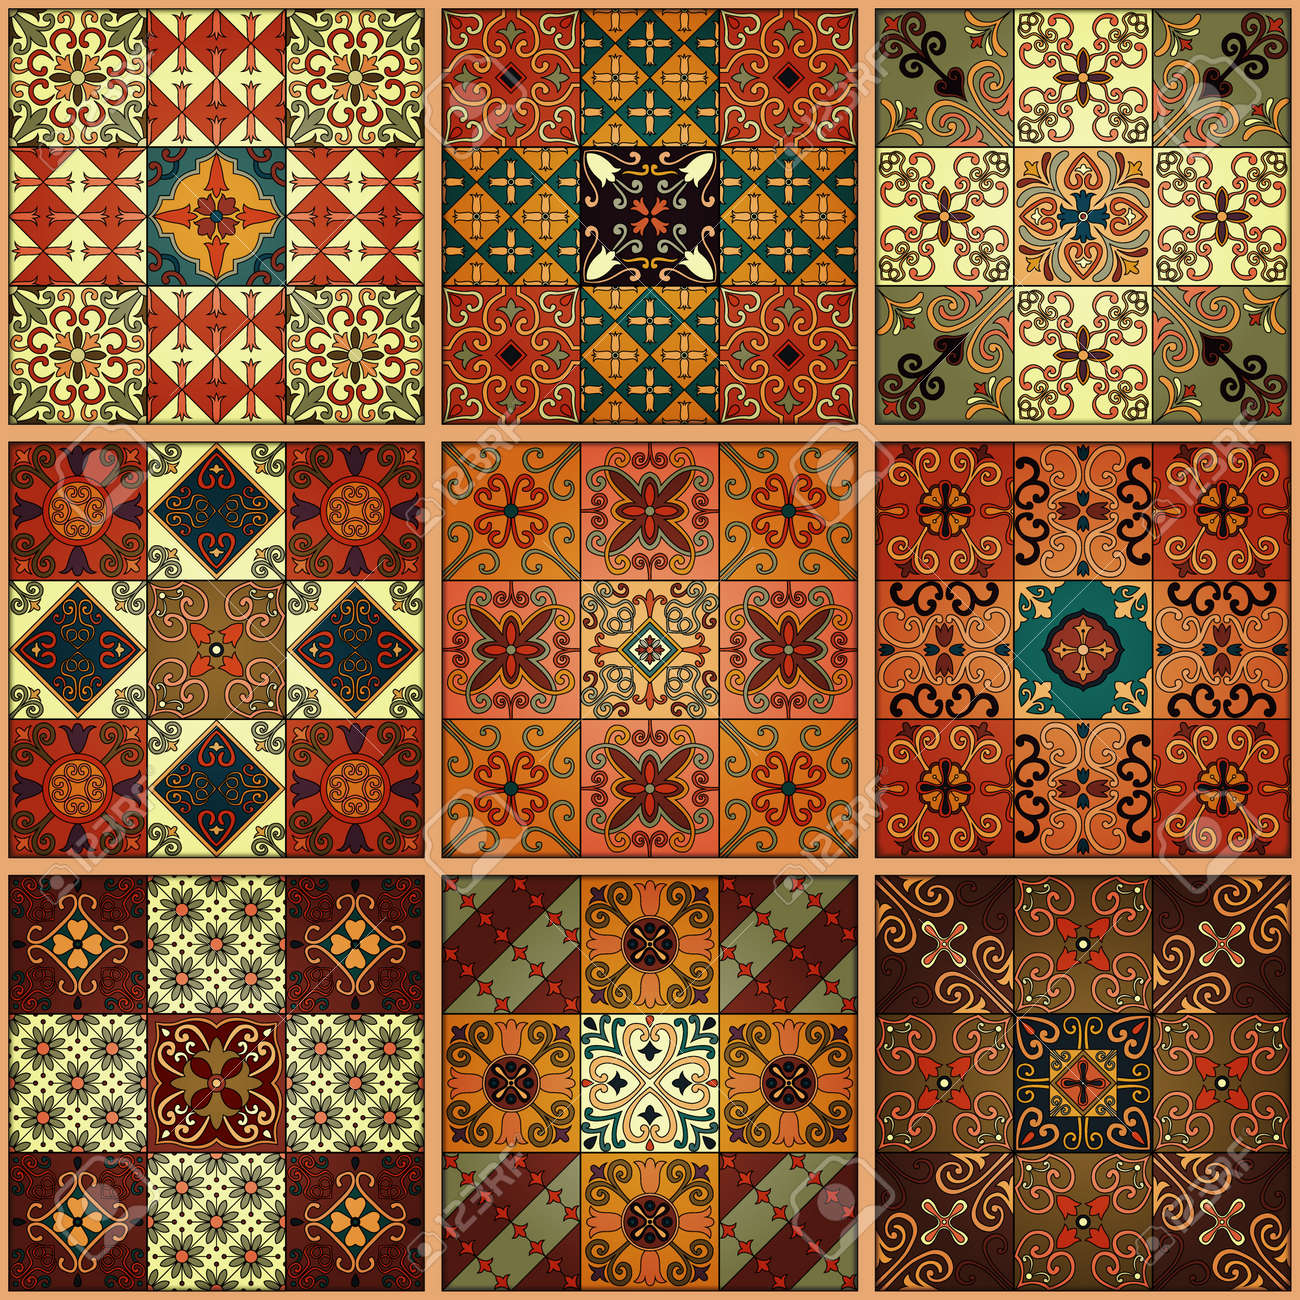 Seamless pattern with portuguese tiles in talavera style. Azulejo, moroccan, mexican ornaments - 80191870